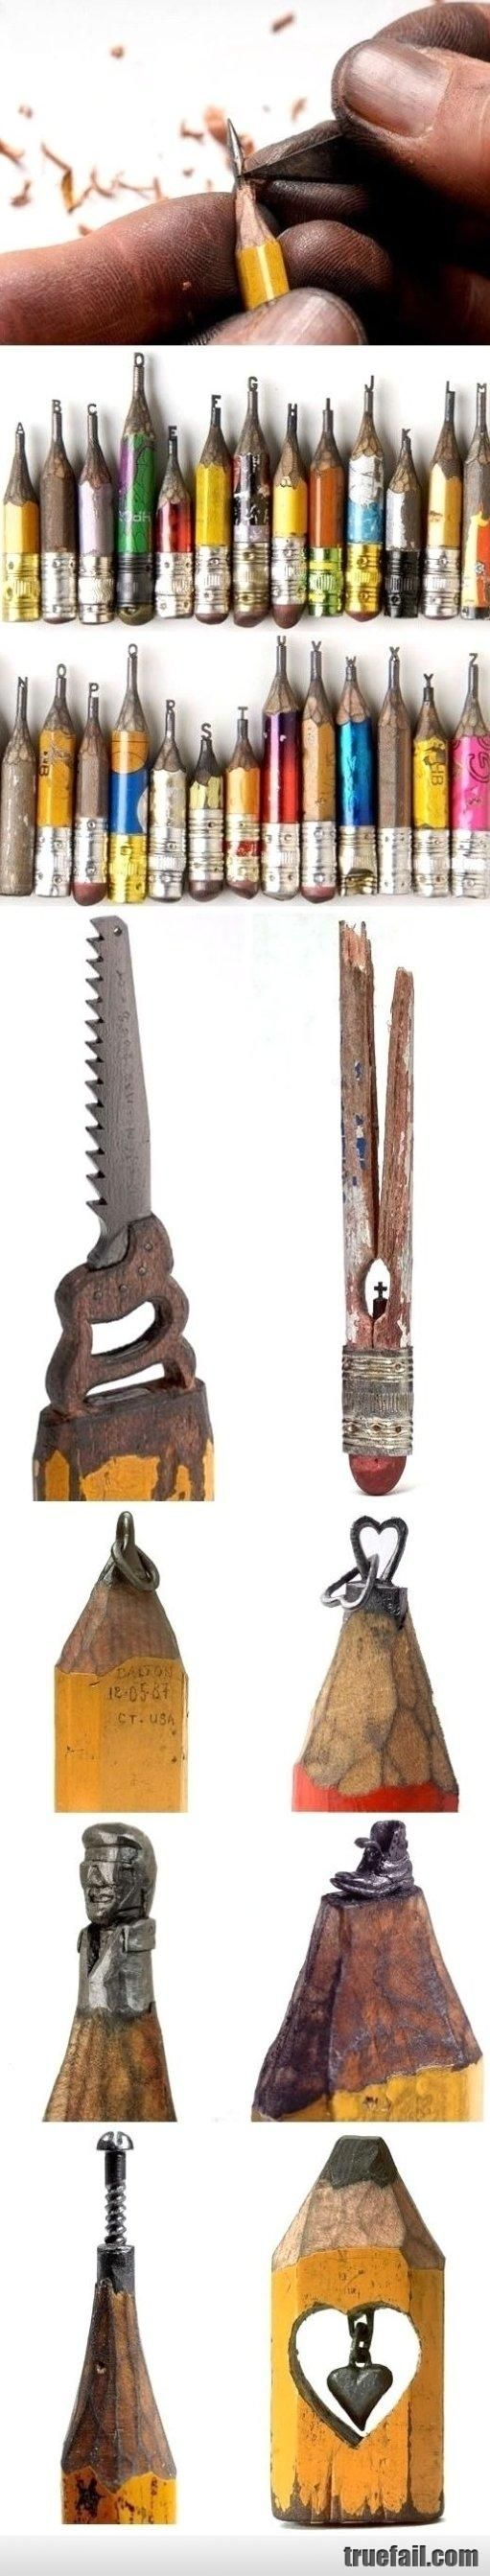 Images about pencil carvings on pinterest